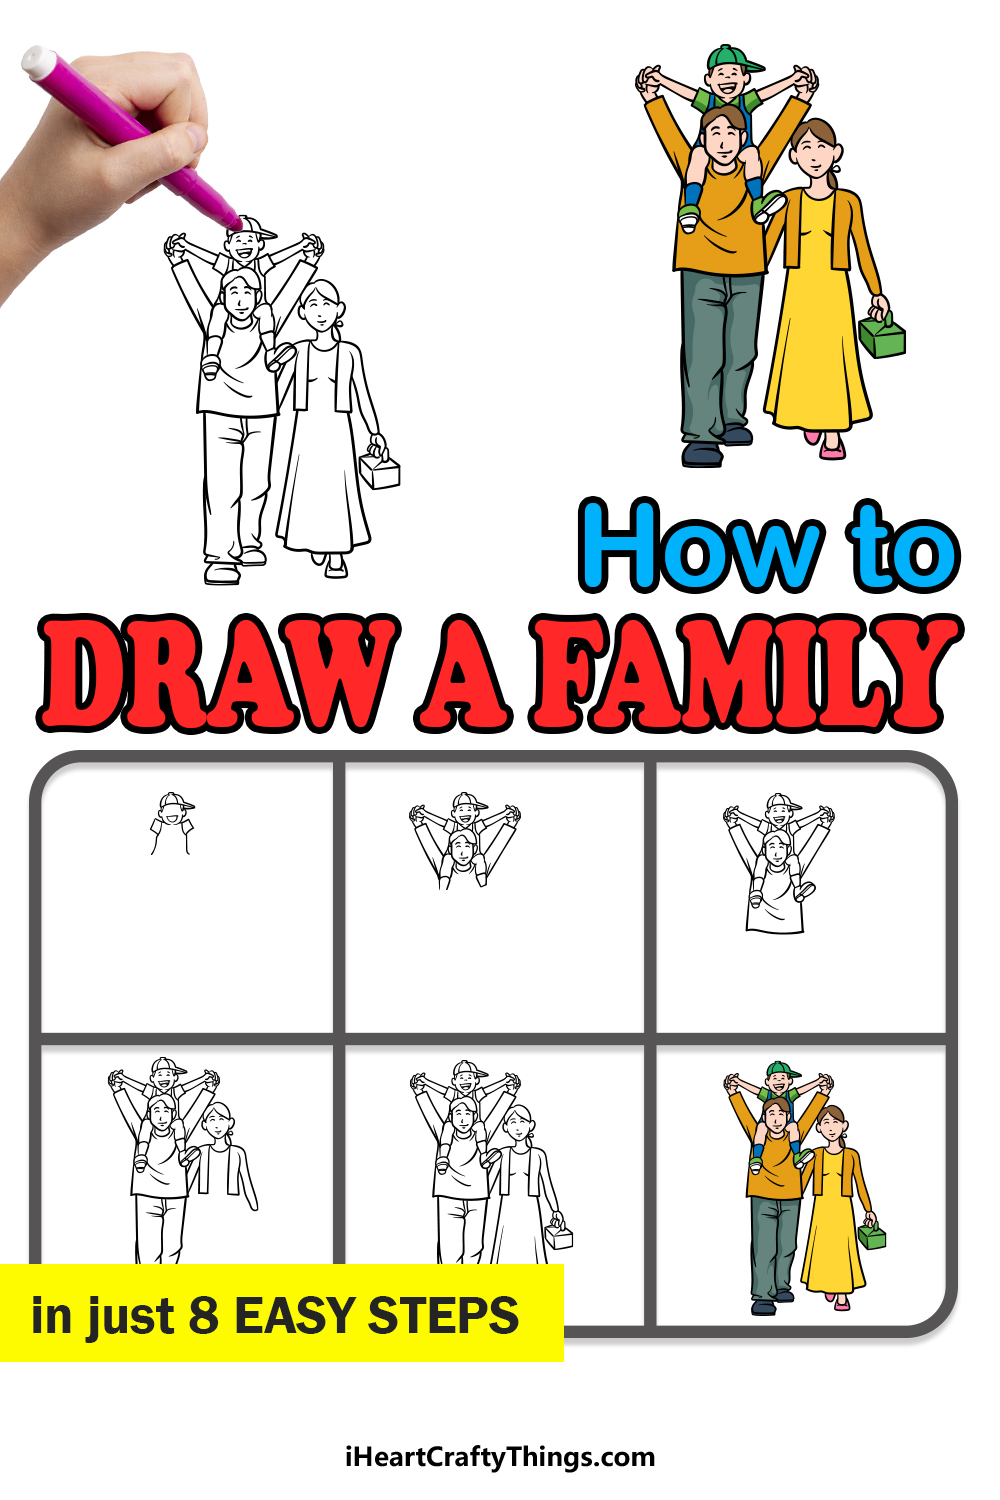 how to draw a family in 8 easy steps